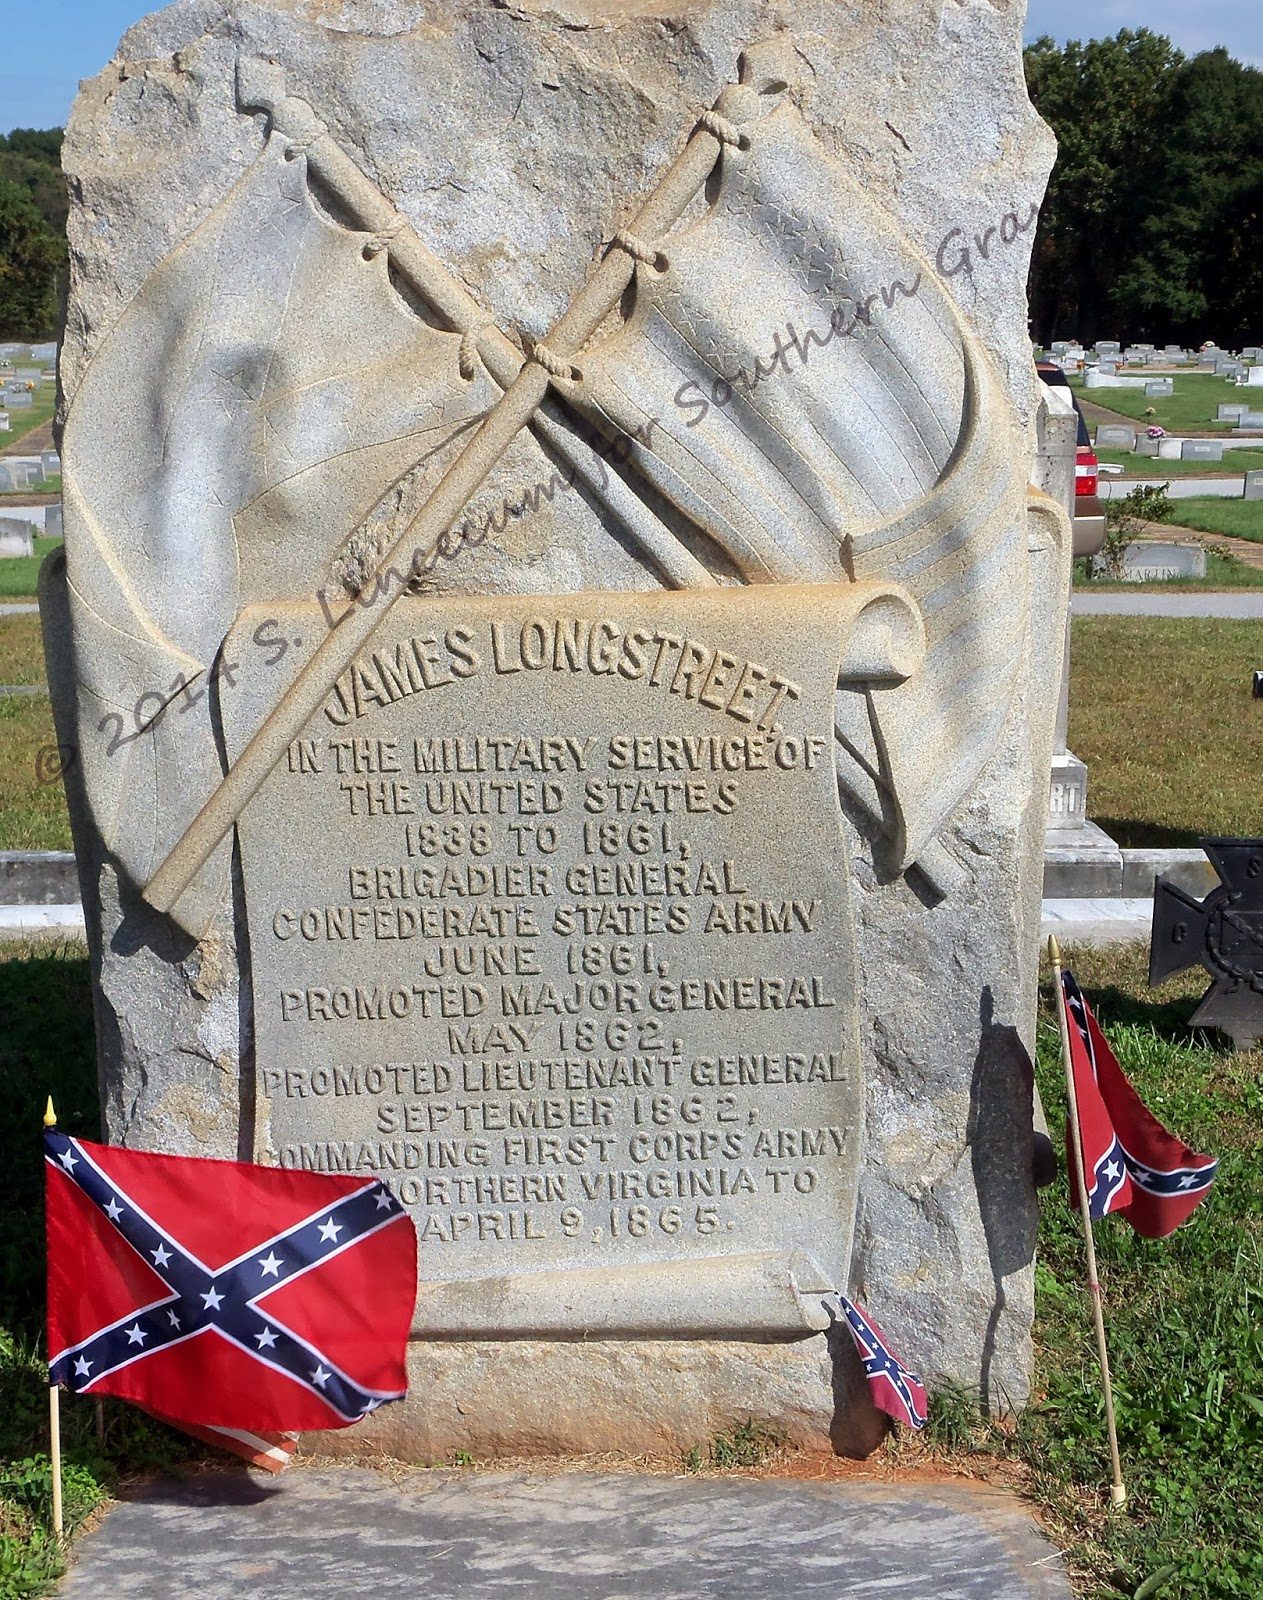 the life of james longstreet a confederate general Steven holmes writes that the relative lack of statues of longstreet, who favored reconstruction after the civil war, shows that confederate history is seen through a political lens.